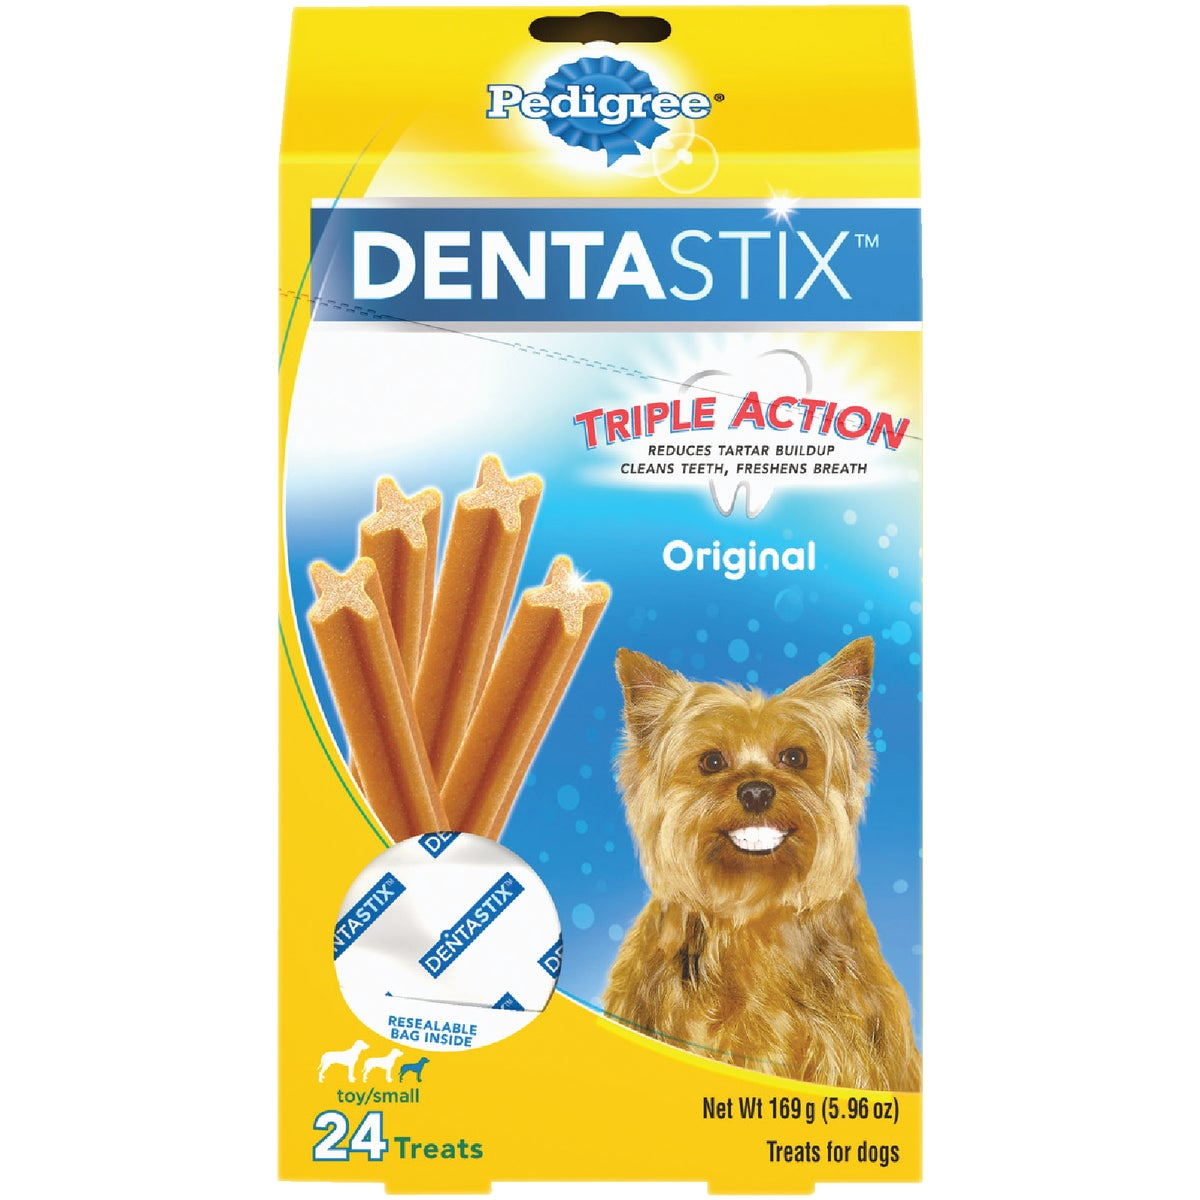 6OZ PEDIGREE DENTASTIX - 02347 by Mars Pedigree